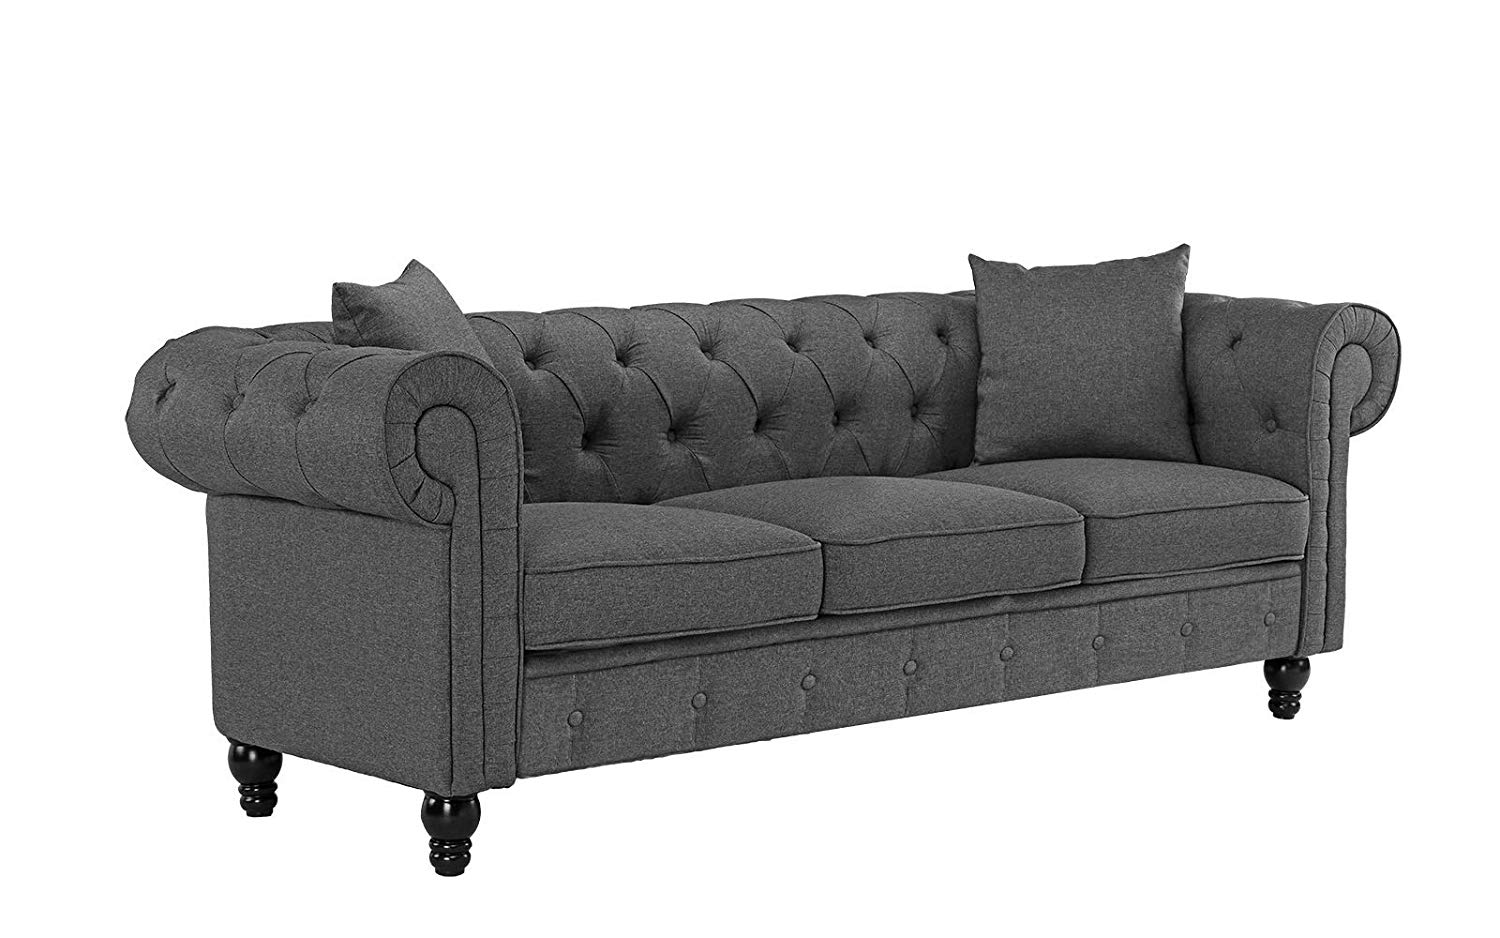 Classic Linen Fabric Scroll Arm Tufted Button Chesterfield Style Sofa (Light Grey)